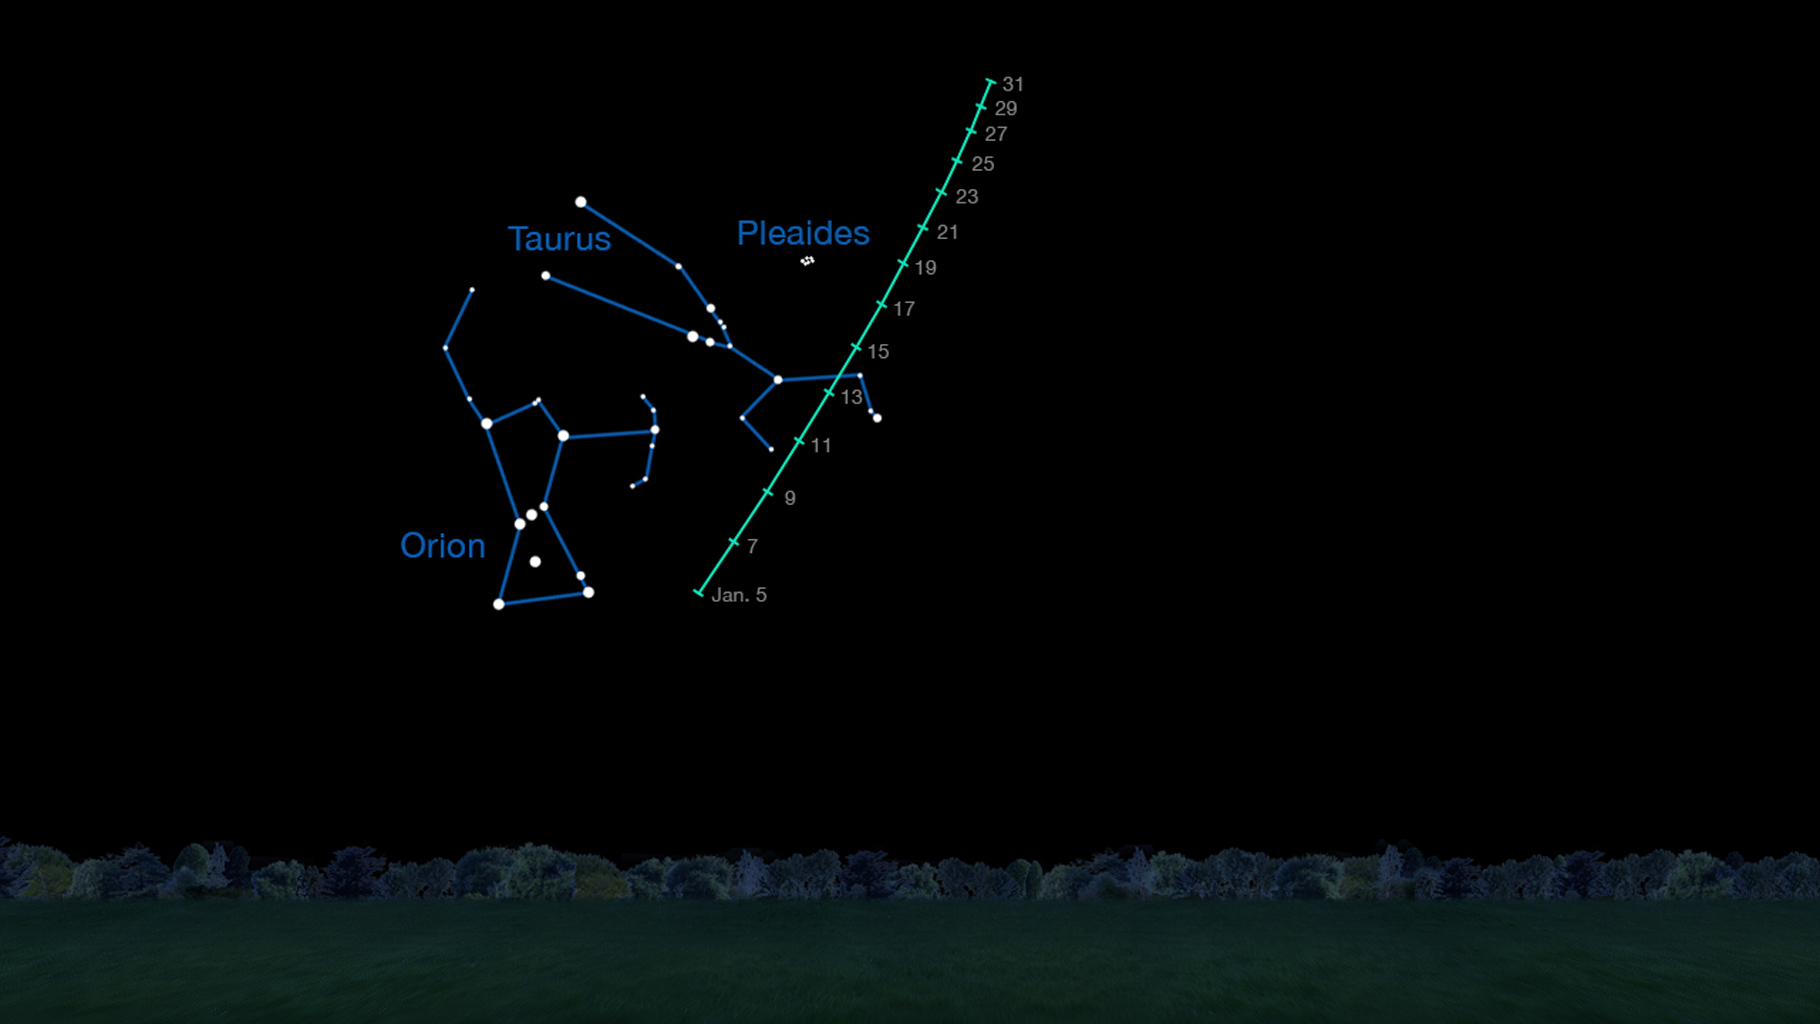 On clear nights in January 2015, comet C/2014 Q2 (Lovejoy) is visible in the Taurus region of the sky to observers using binoculars. This chart indicates where to look for it on different dates during the month.